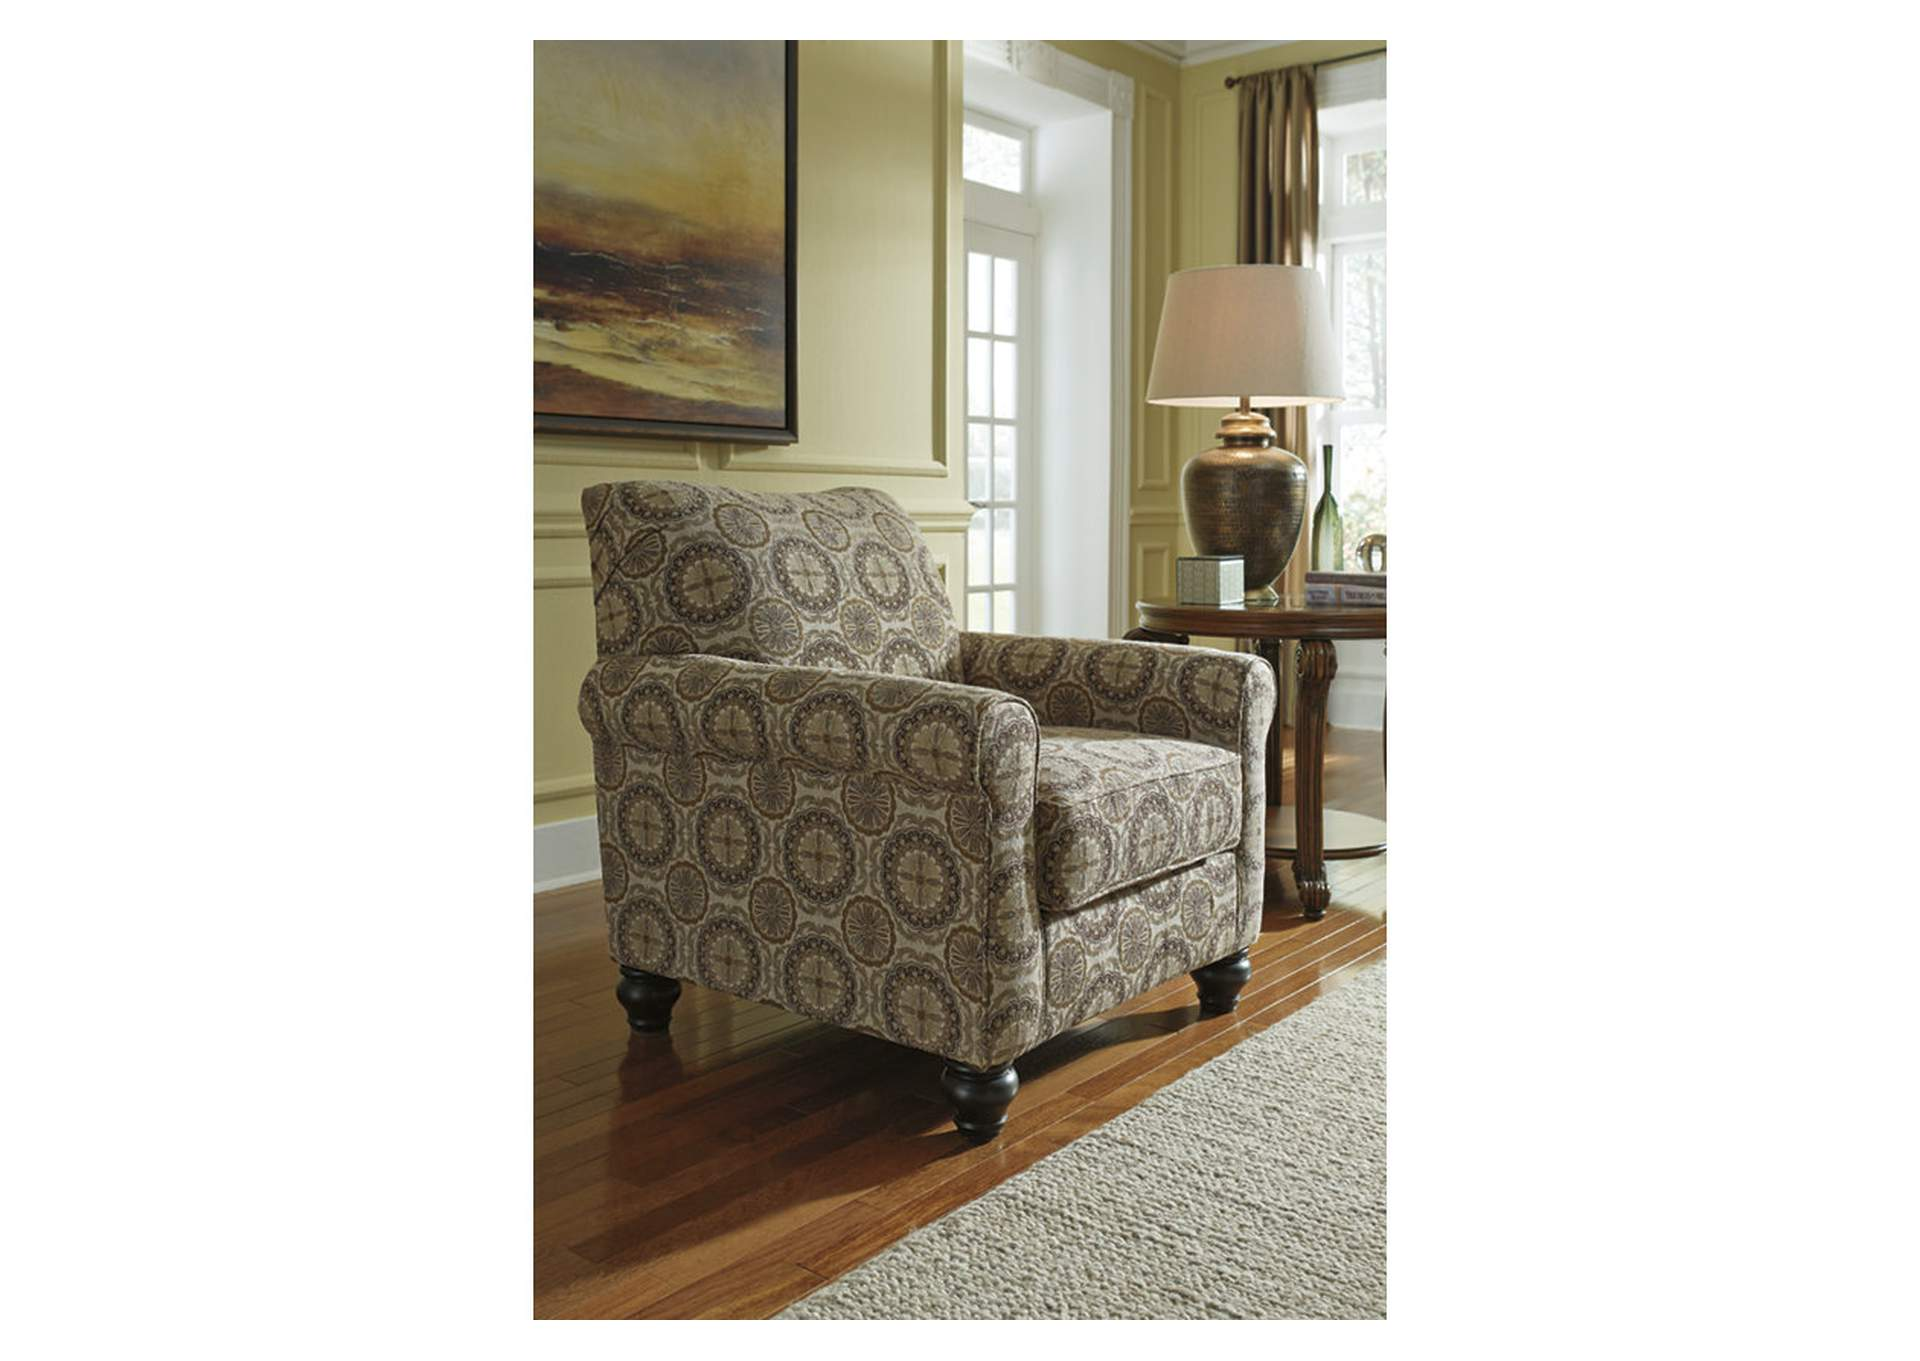 Roses Flooring And Furniture Breville Burlap Accent Chair